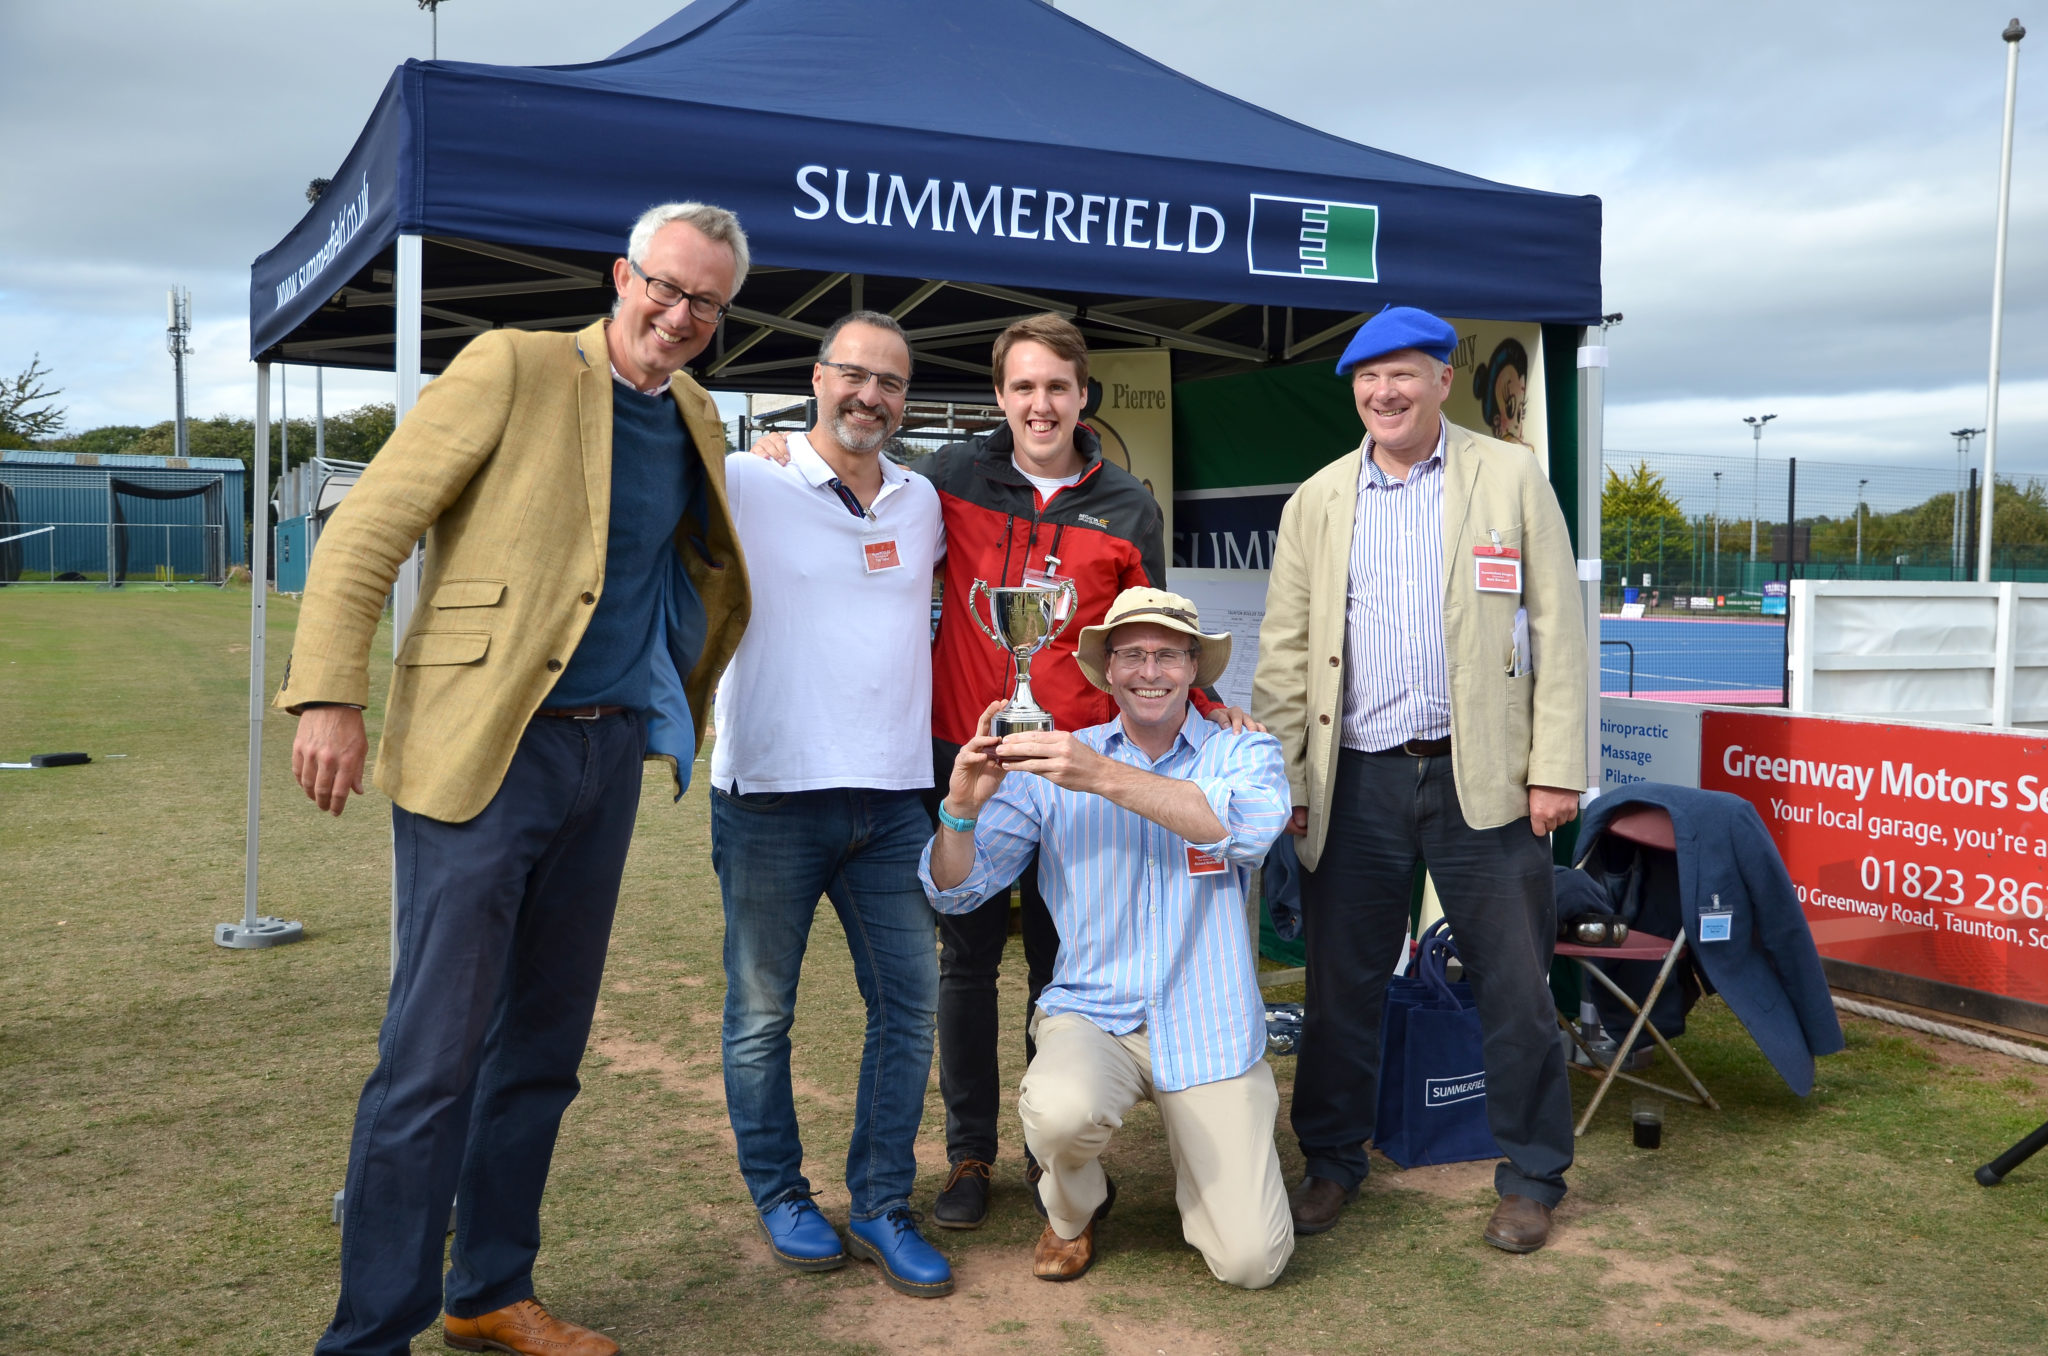 Cup Winners 'HyperBOULEE', the Foot Anstey team, with Summerfield Managing Director Mark Blackwell